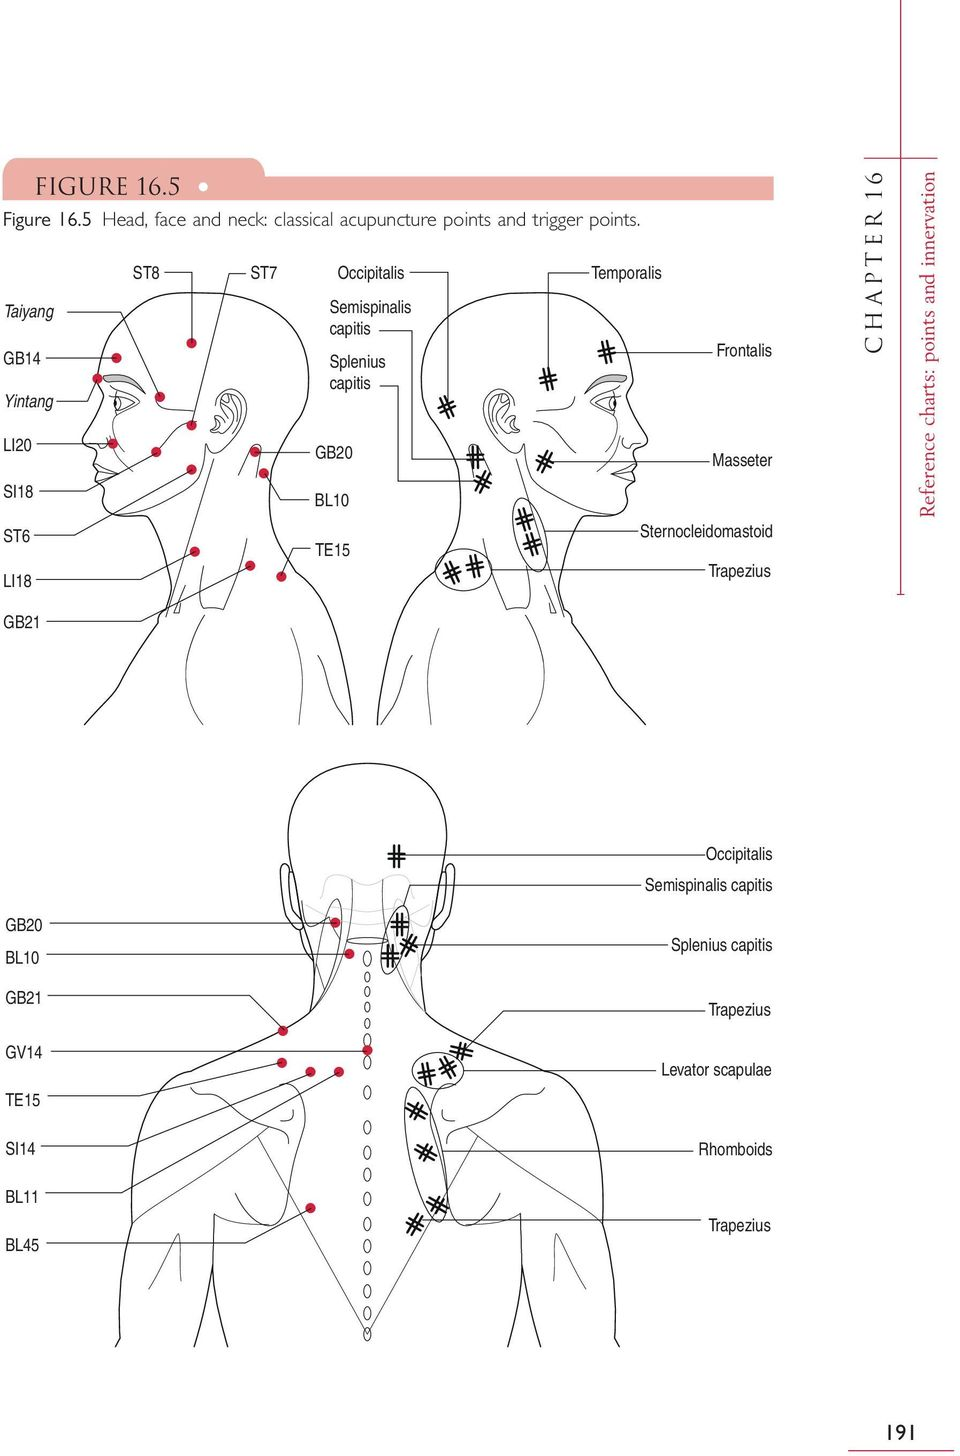 TE15 Temporalis Frontalis Masseter Sternocleidomastoid Trapezius CHAPTER 16 Reference charts: points and